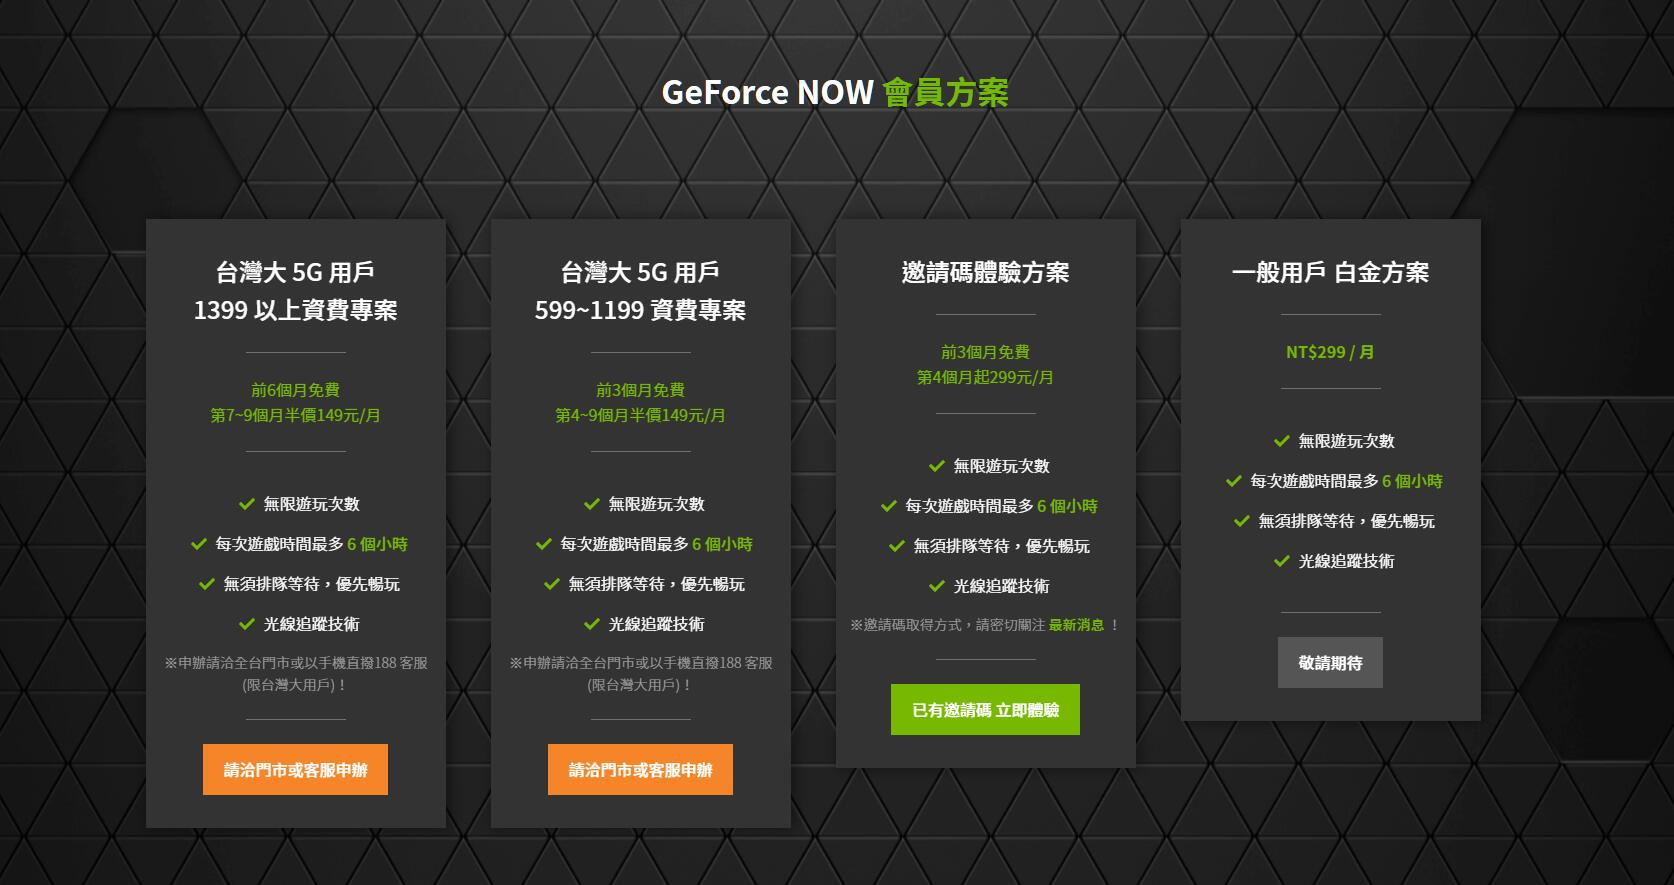 GeForce Now TW